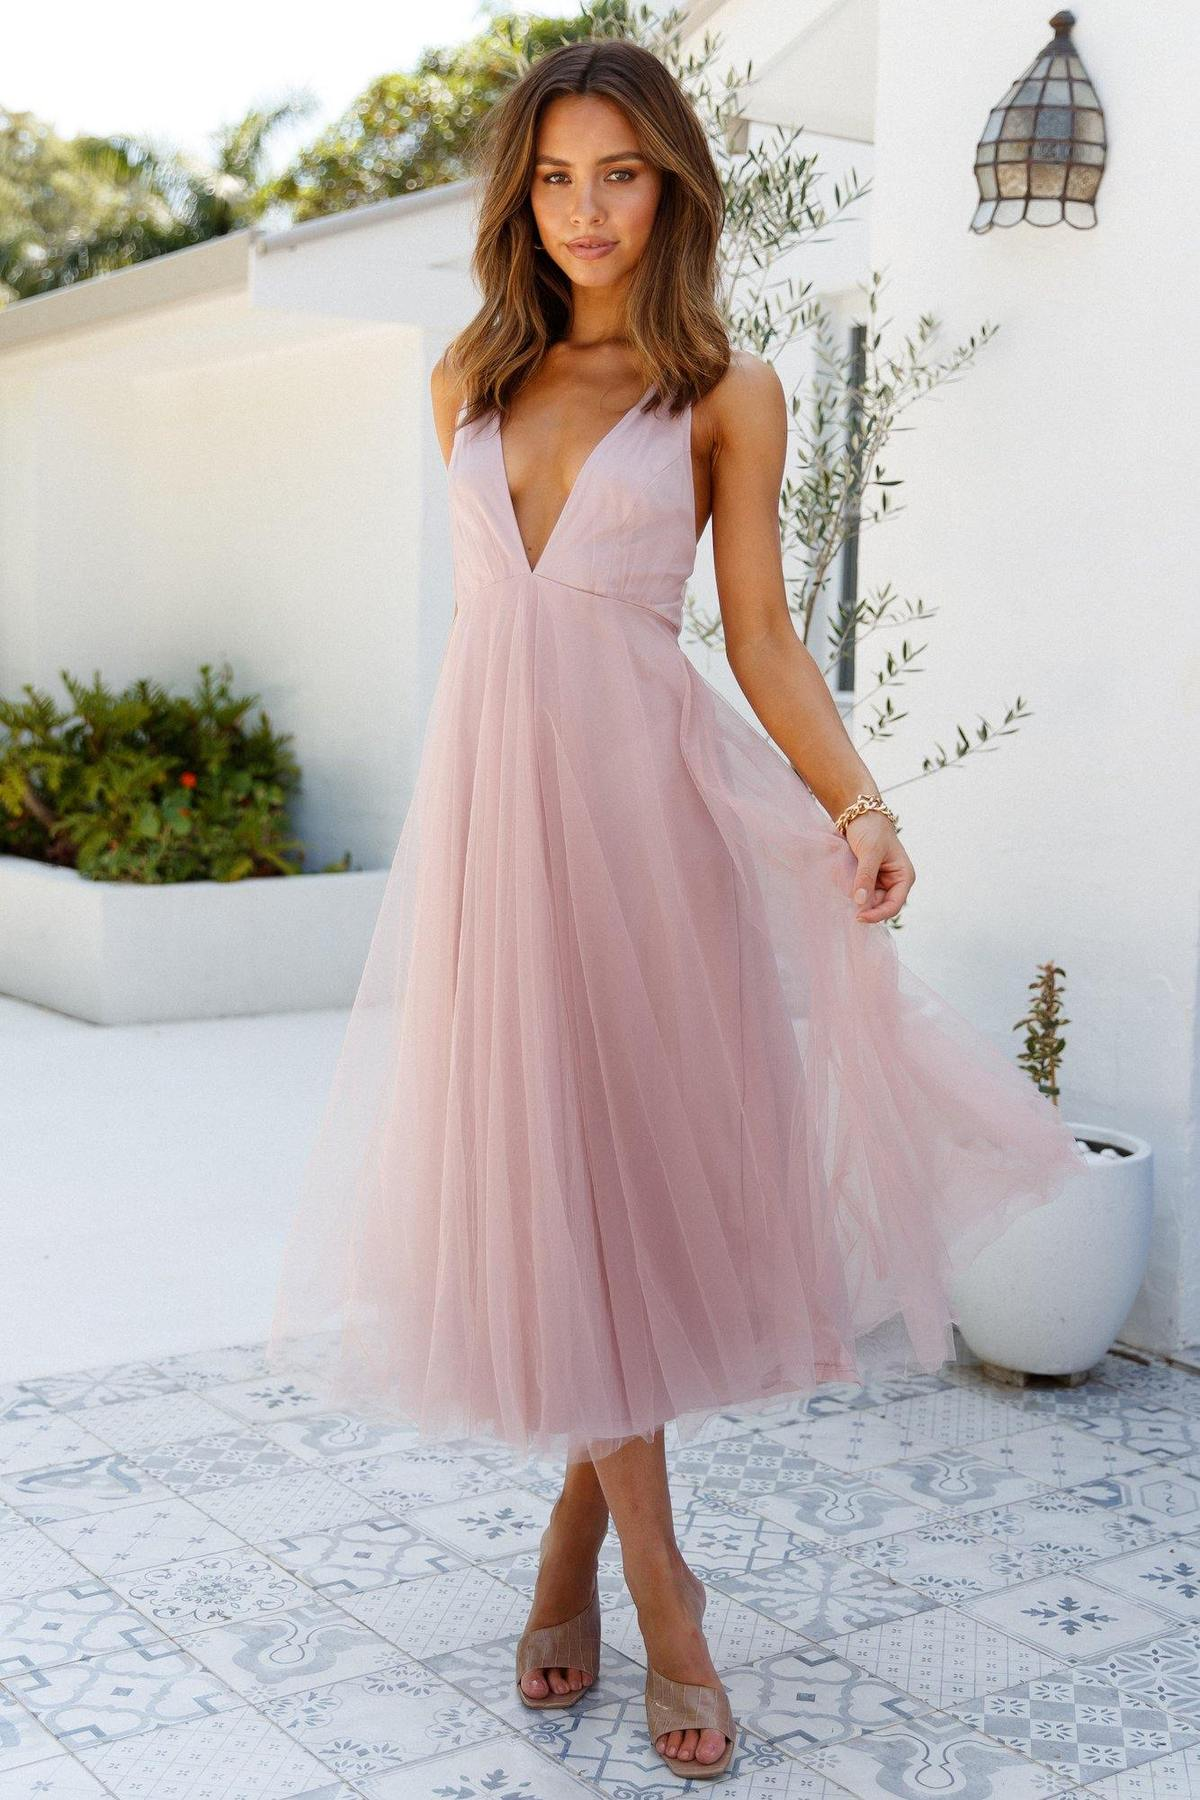 Dusty pink tulle dress wedding guest outfit